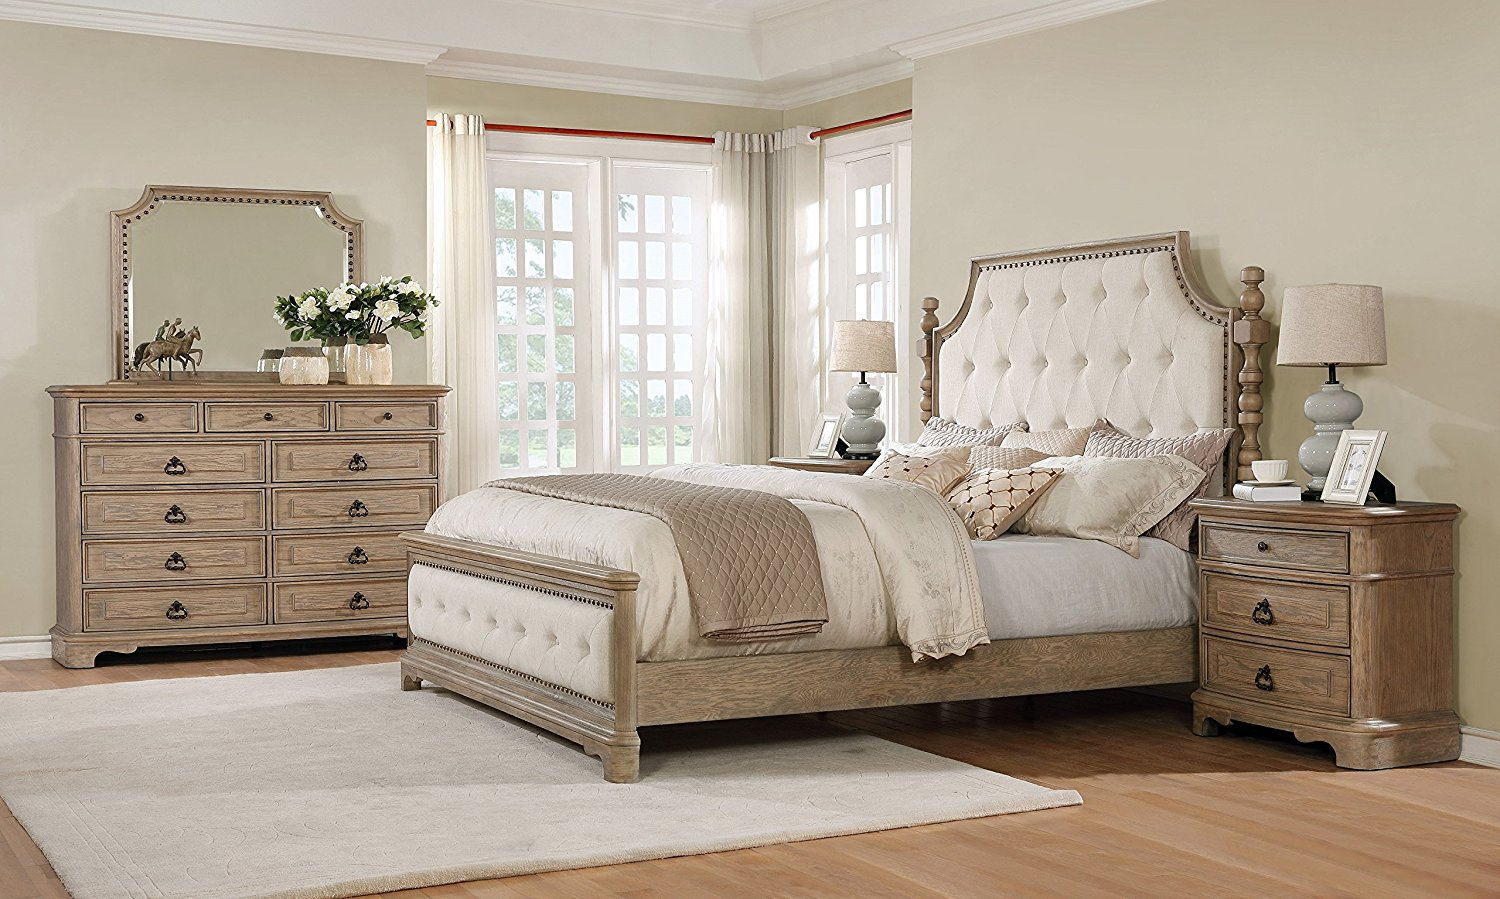 Roundhill Furniture B296QDMN2 Piraeus 296 Solid Wood Construction Bedroom Set with Queen Size Bed, Dresser 2, Mirror and 2 Night Stands